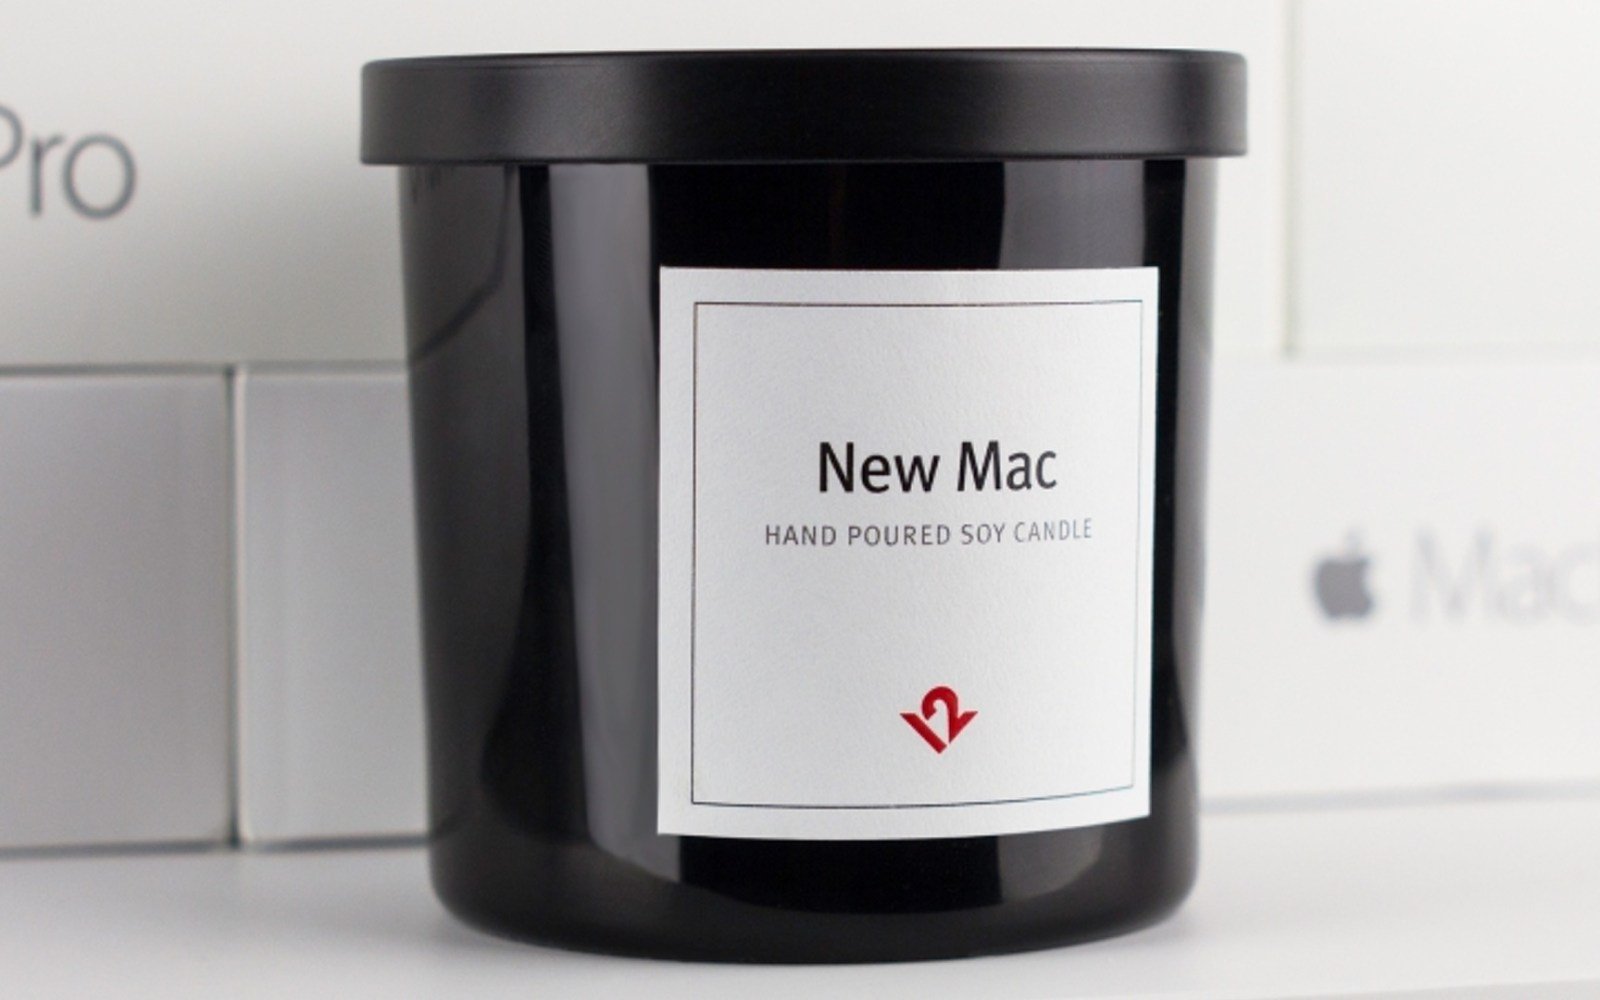 Love that new Mac smell? Now you can buy a candle that smells like a freshly-opened Apple product